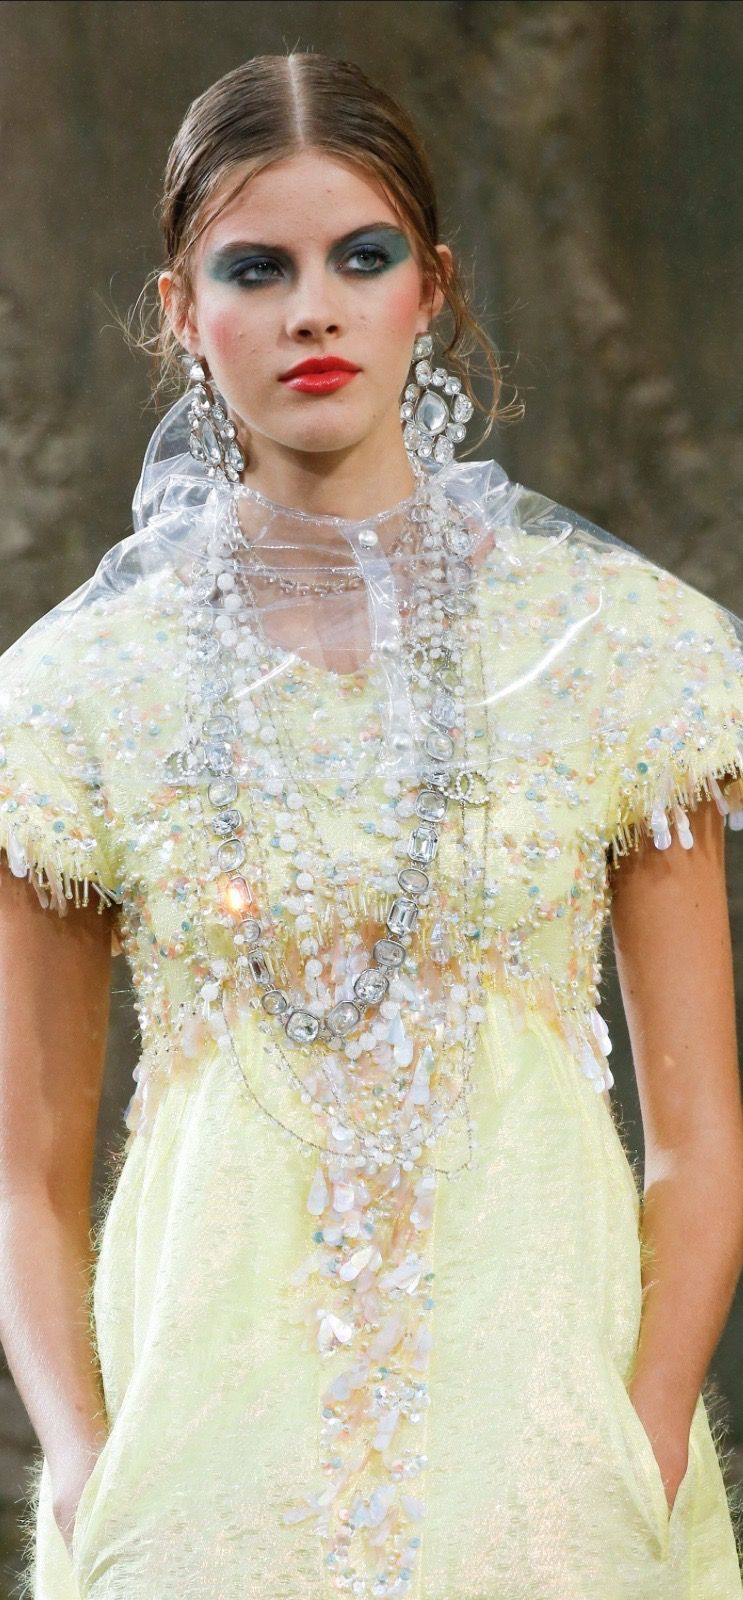 Chanel details bejeweled chanel pinterest detail coco